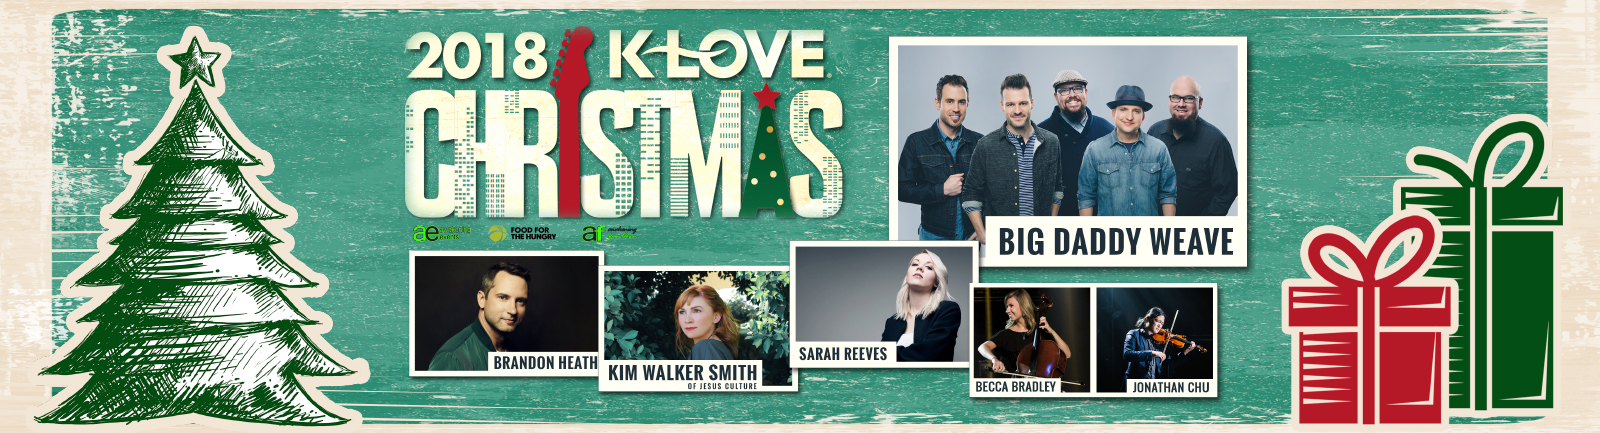 Who Is The Minster At The 2020 Klove Christmas Tour K Love Christmas